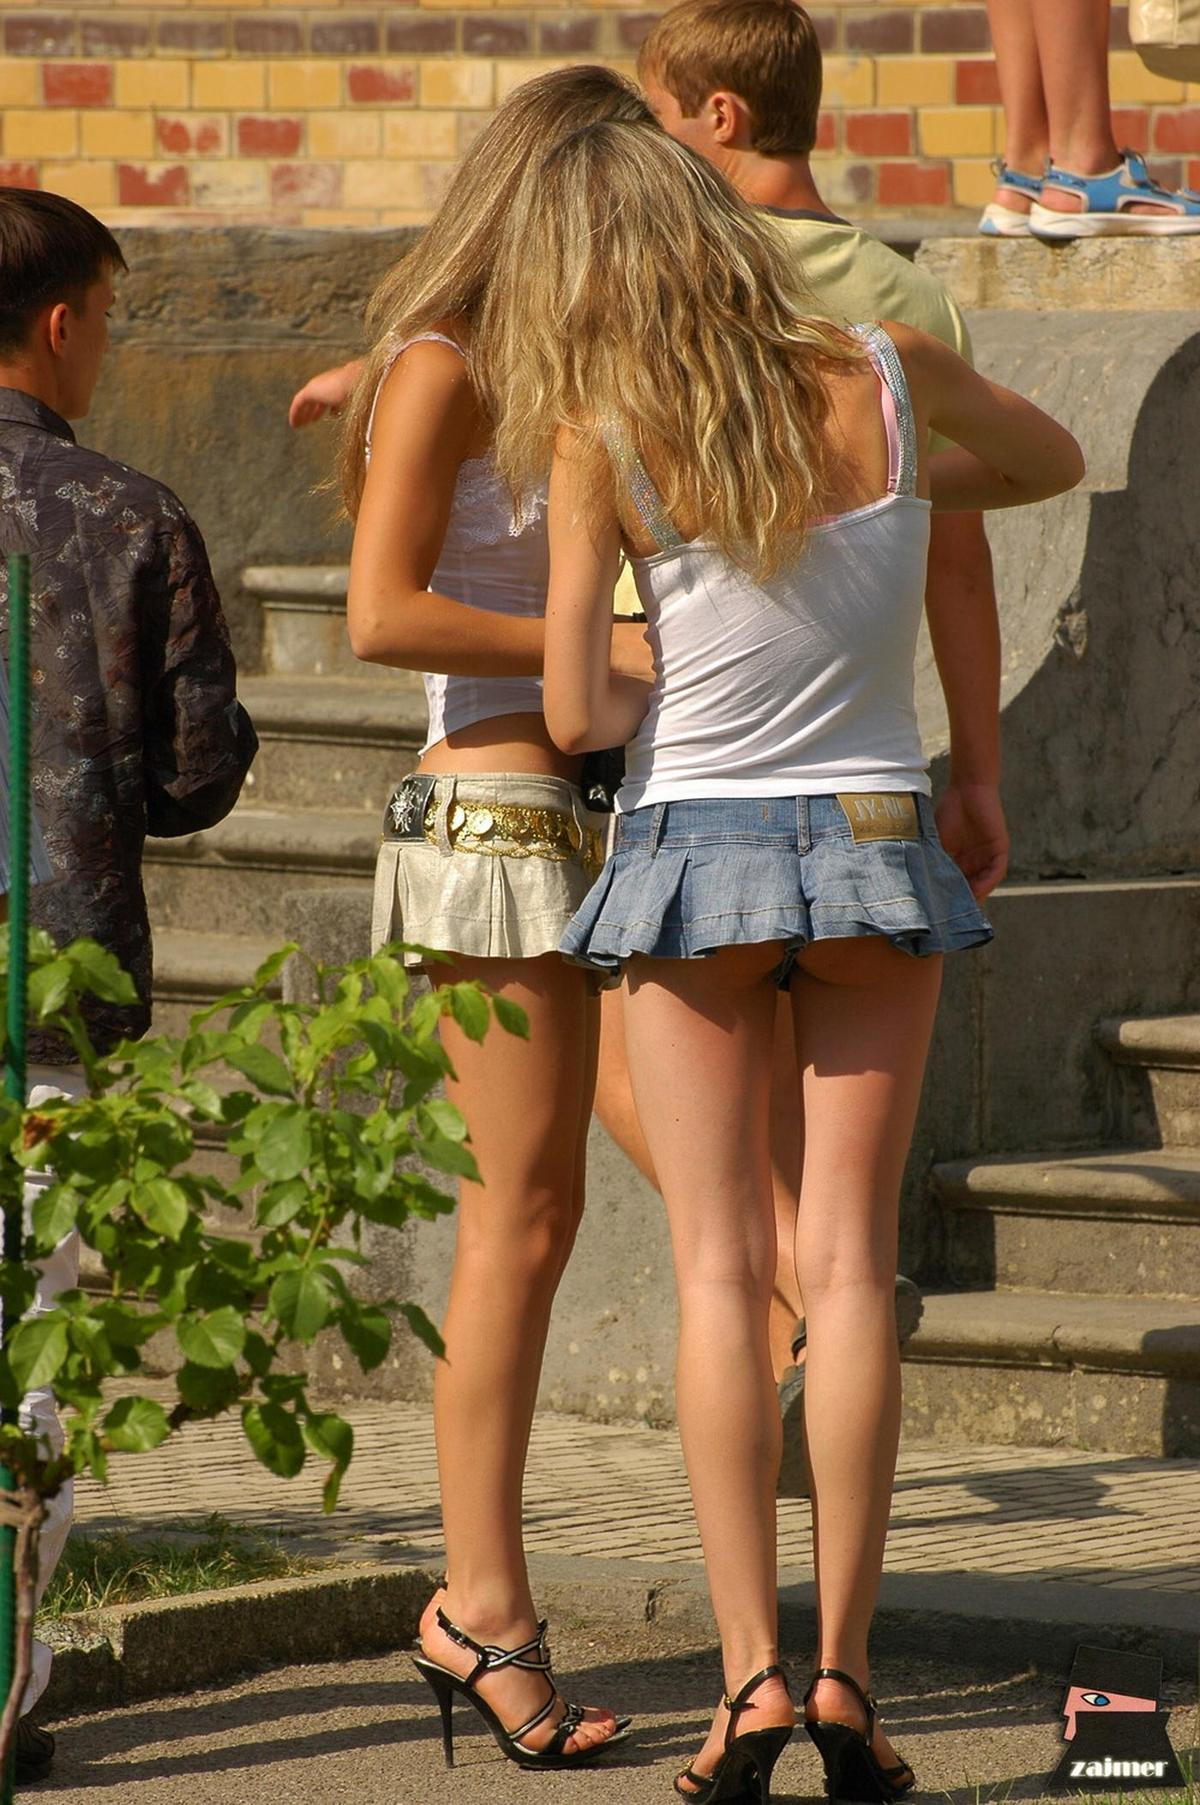 Amature Non Nude Swede Girls